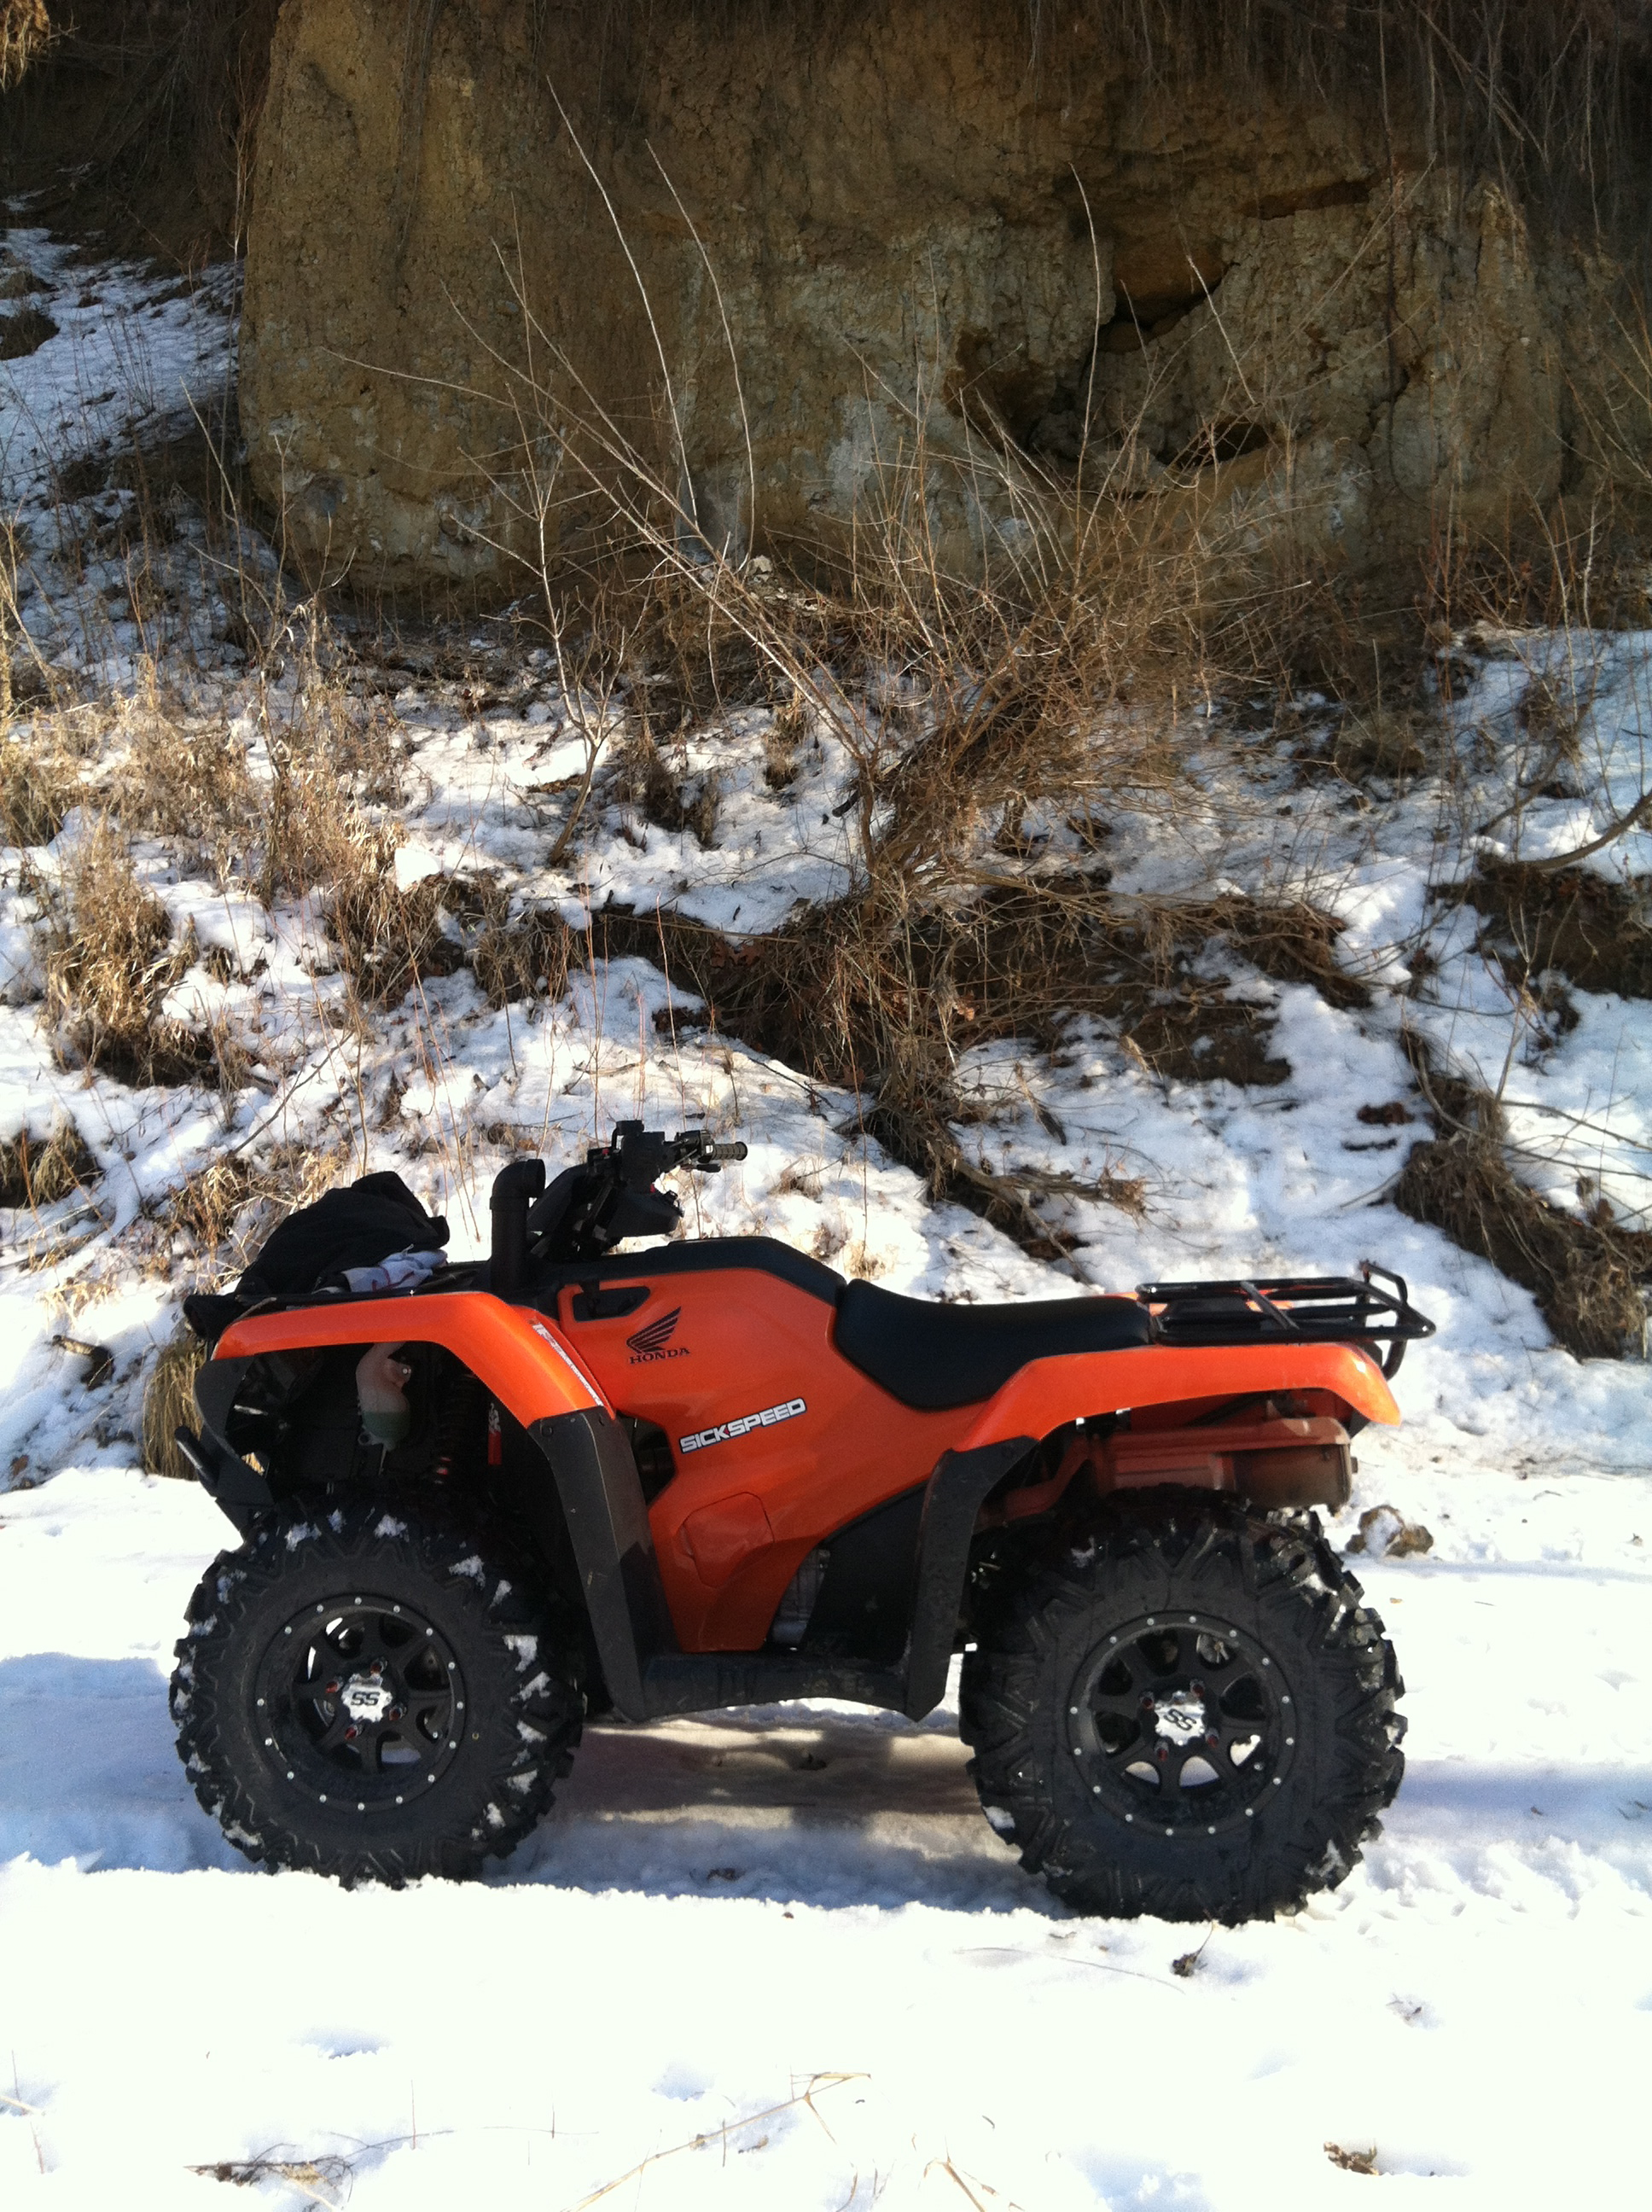 all the 2014 ranchers - Page 6 - Honda ATV Forum